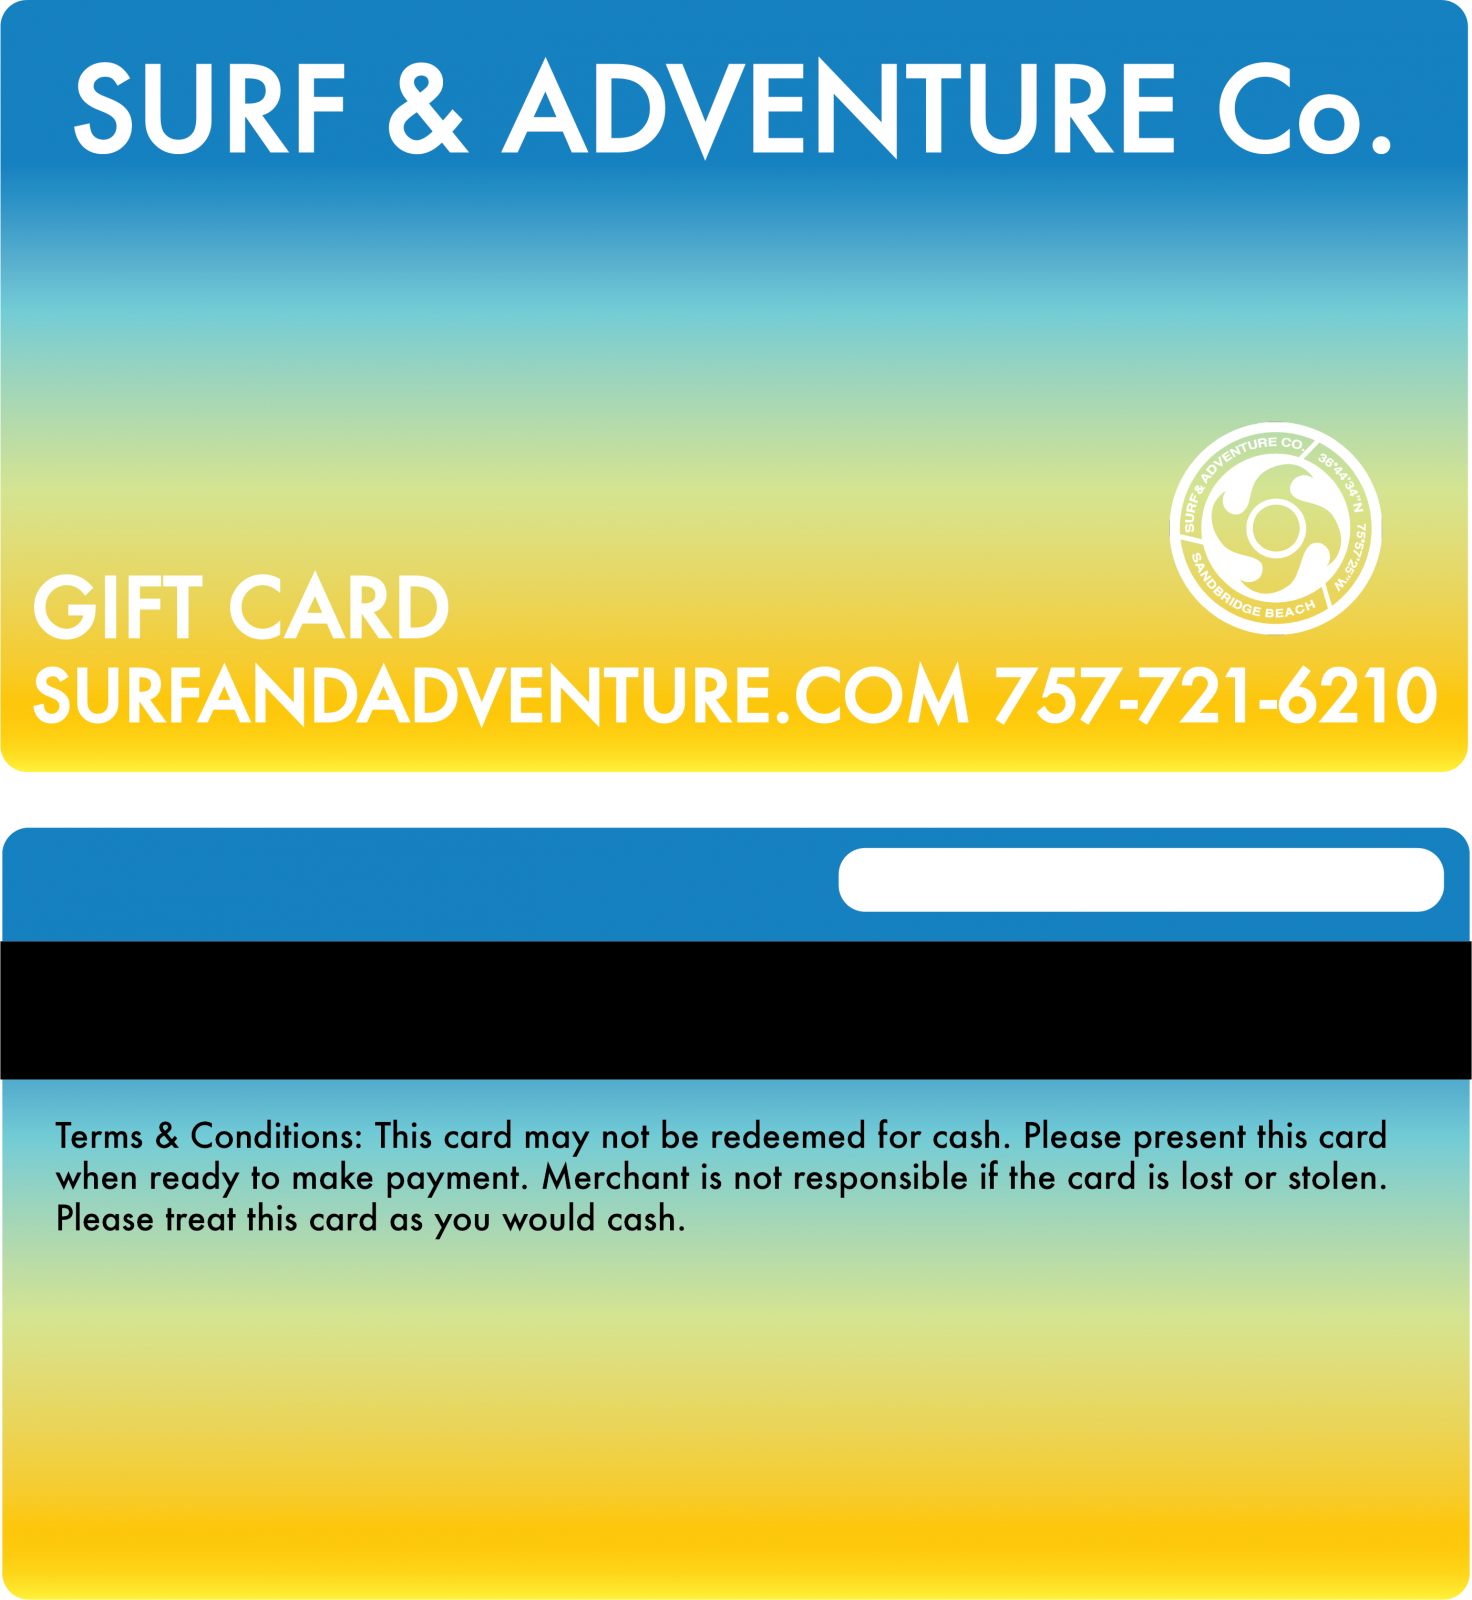 Surf & Adventure Gift Card